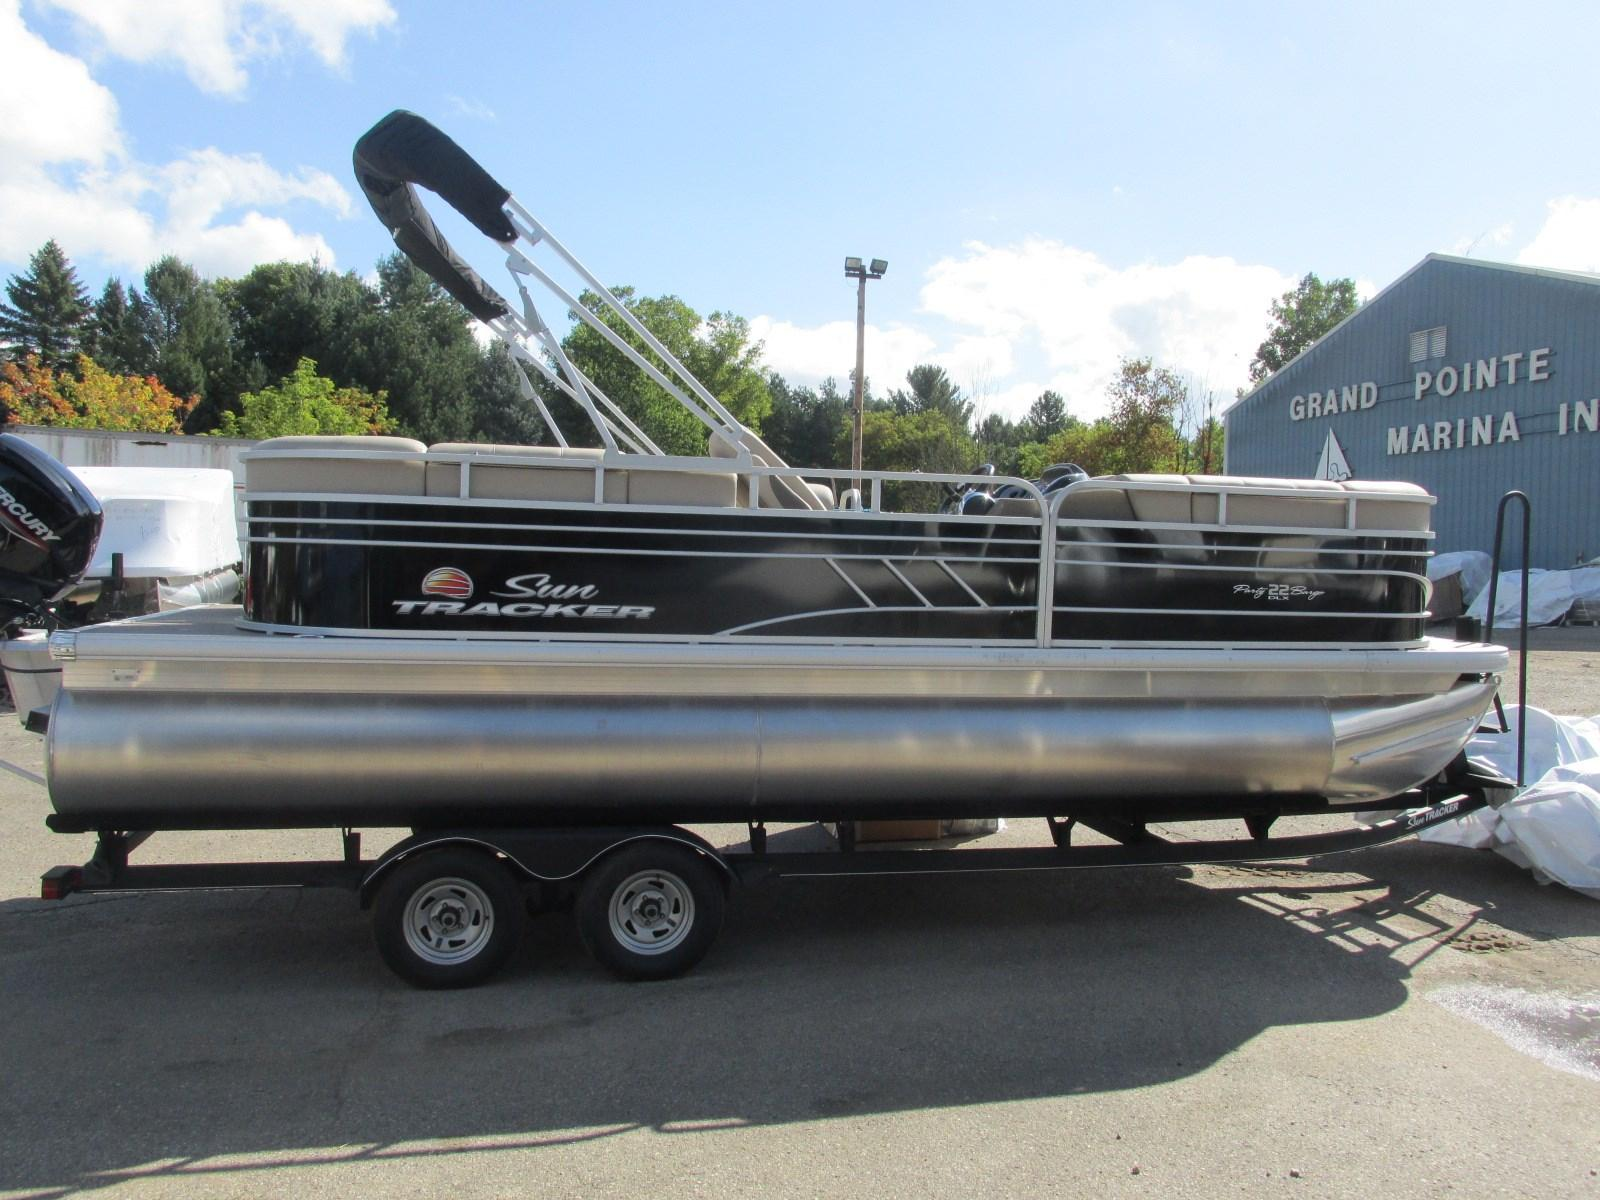 Sun TrackerParty Barge 22 RF DLX